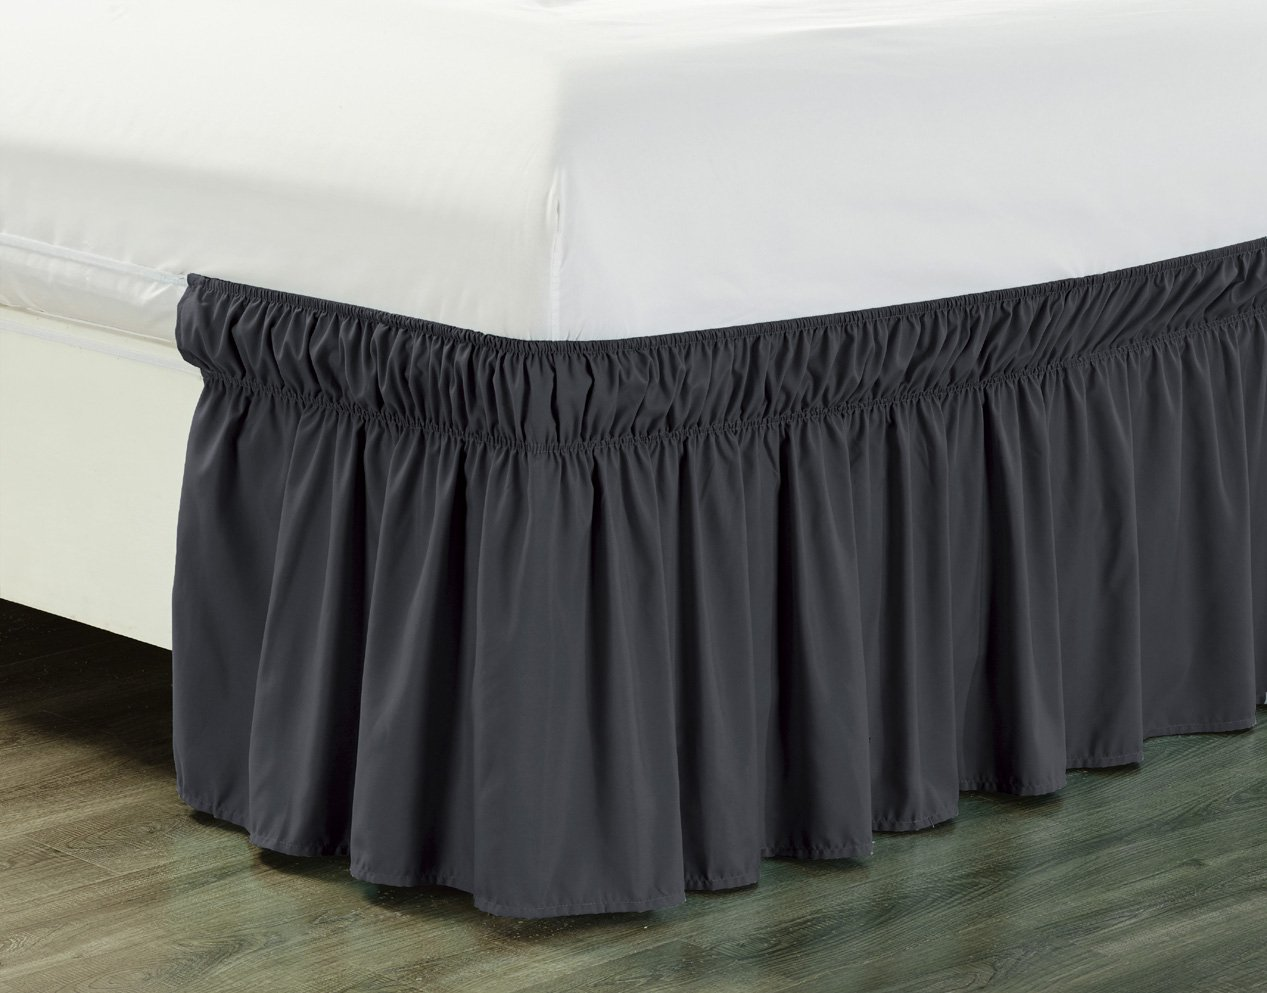 Wrap Around 21'' inch long fall GREY Ruffled Elastic Solid Bed Skirt Fits All QUEEN, KING and CAL KING size bedding High Thread Count Microfiber Dust Ruffle, Soft & Wrinkle Free.